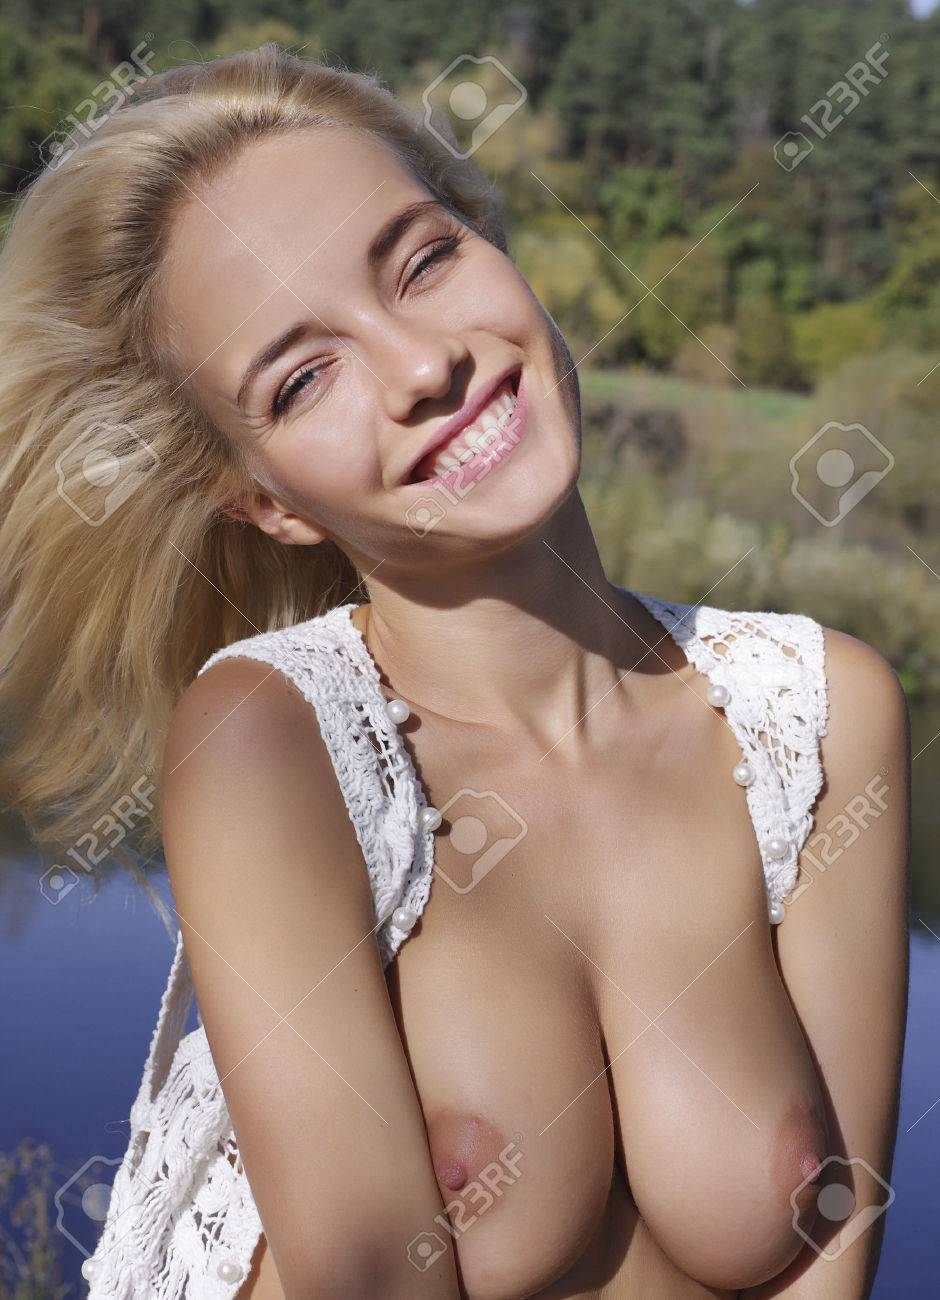 Nude Girl Portrait Of A Naked Woman Stock Photo Picture And